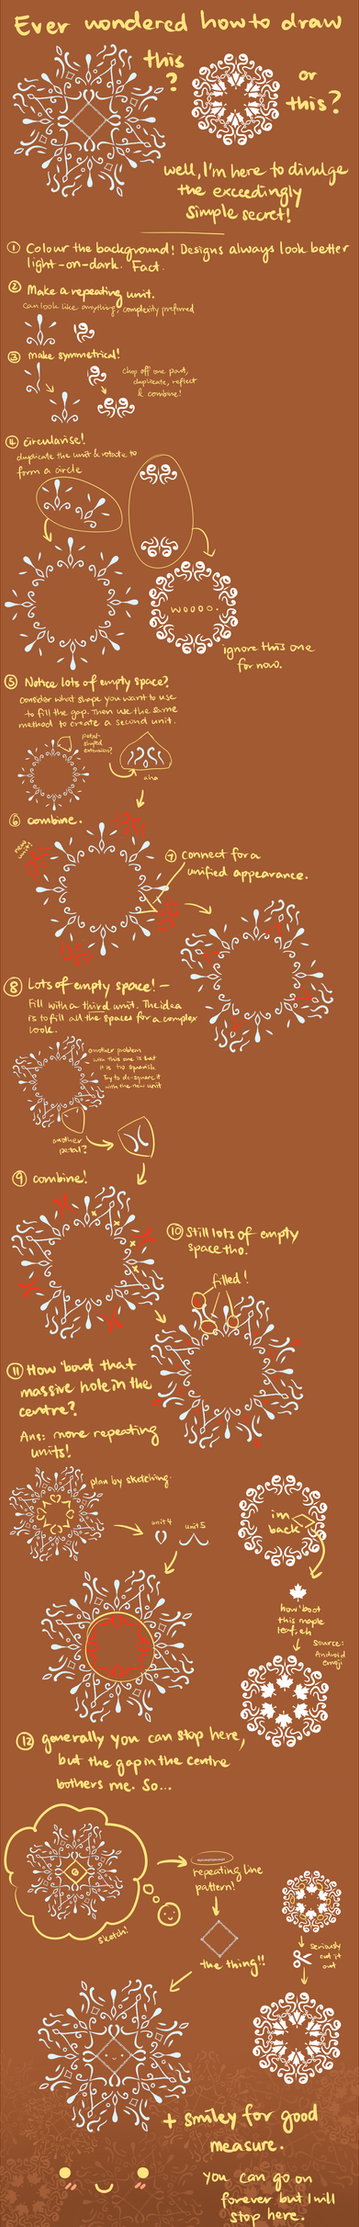 Flowery design tutorial by Sword-Dance